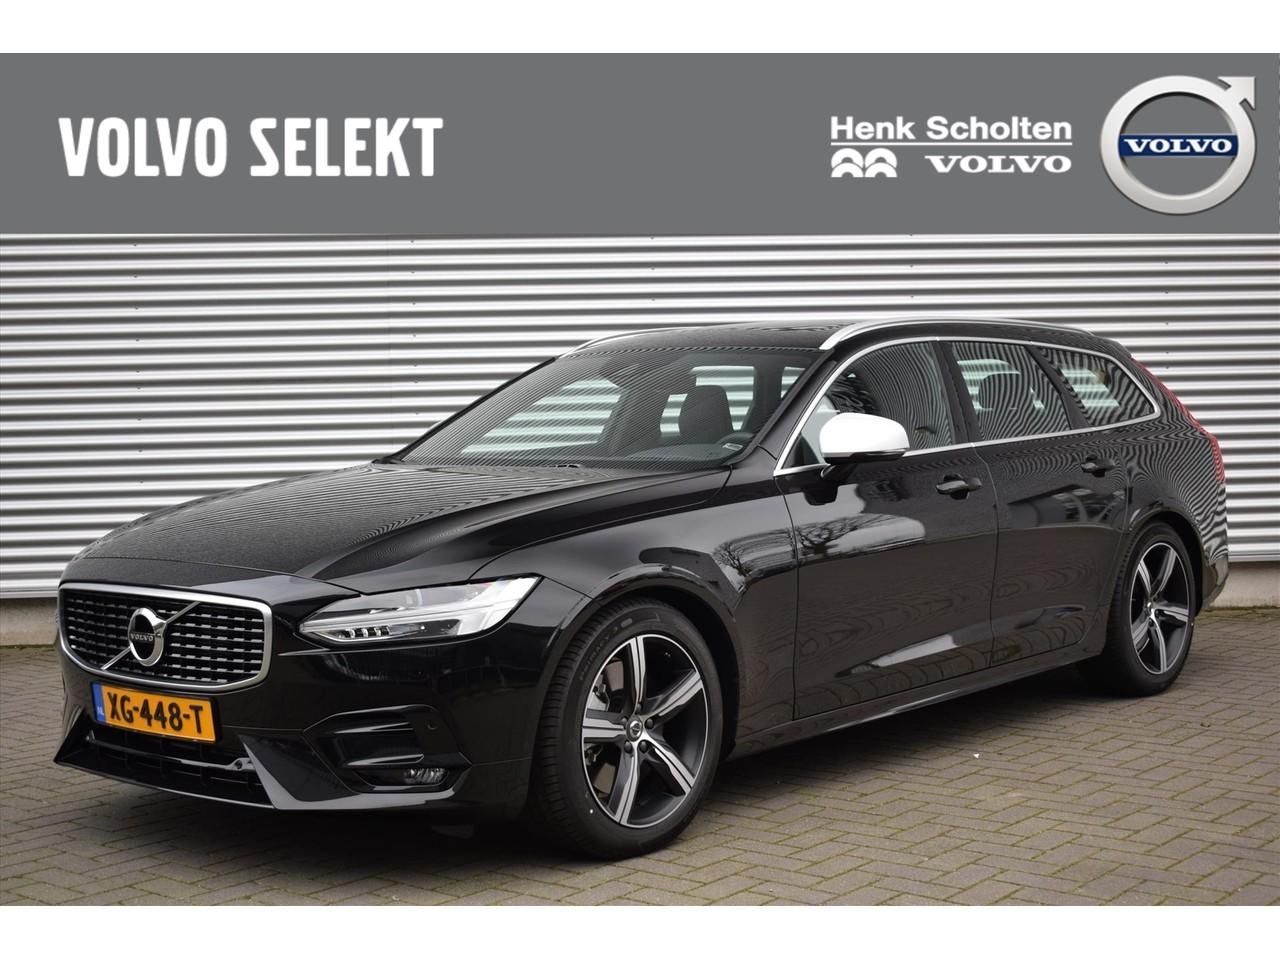 Volvo V90 T4 190pk aut(8) business sport luxury panodak